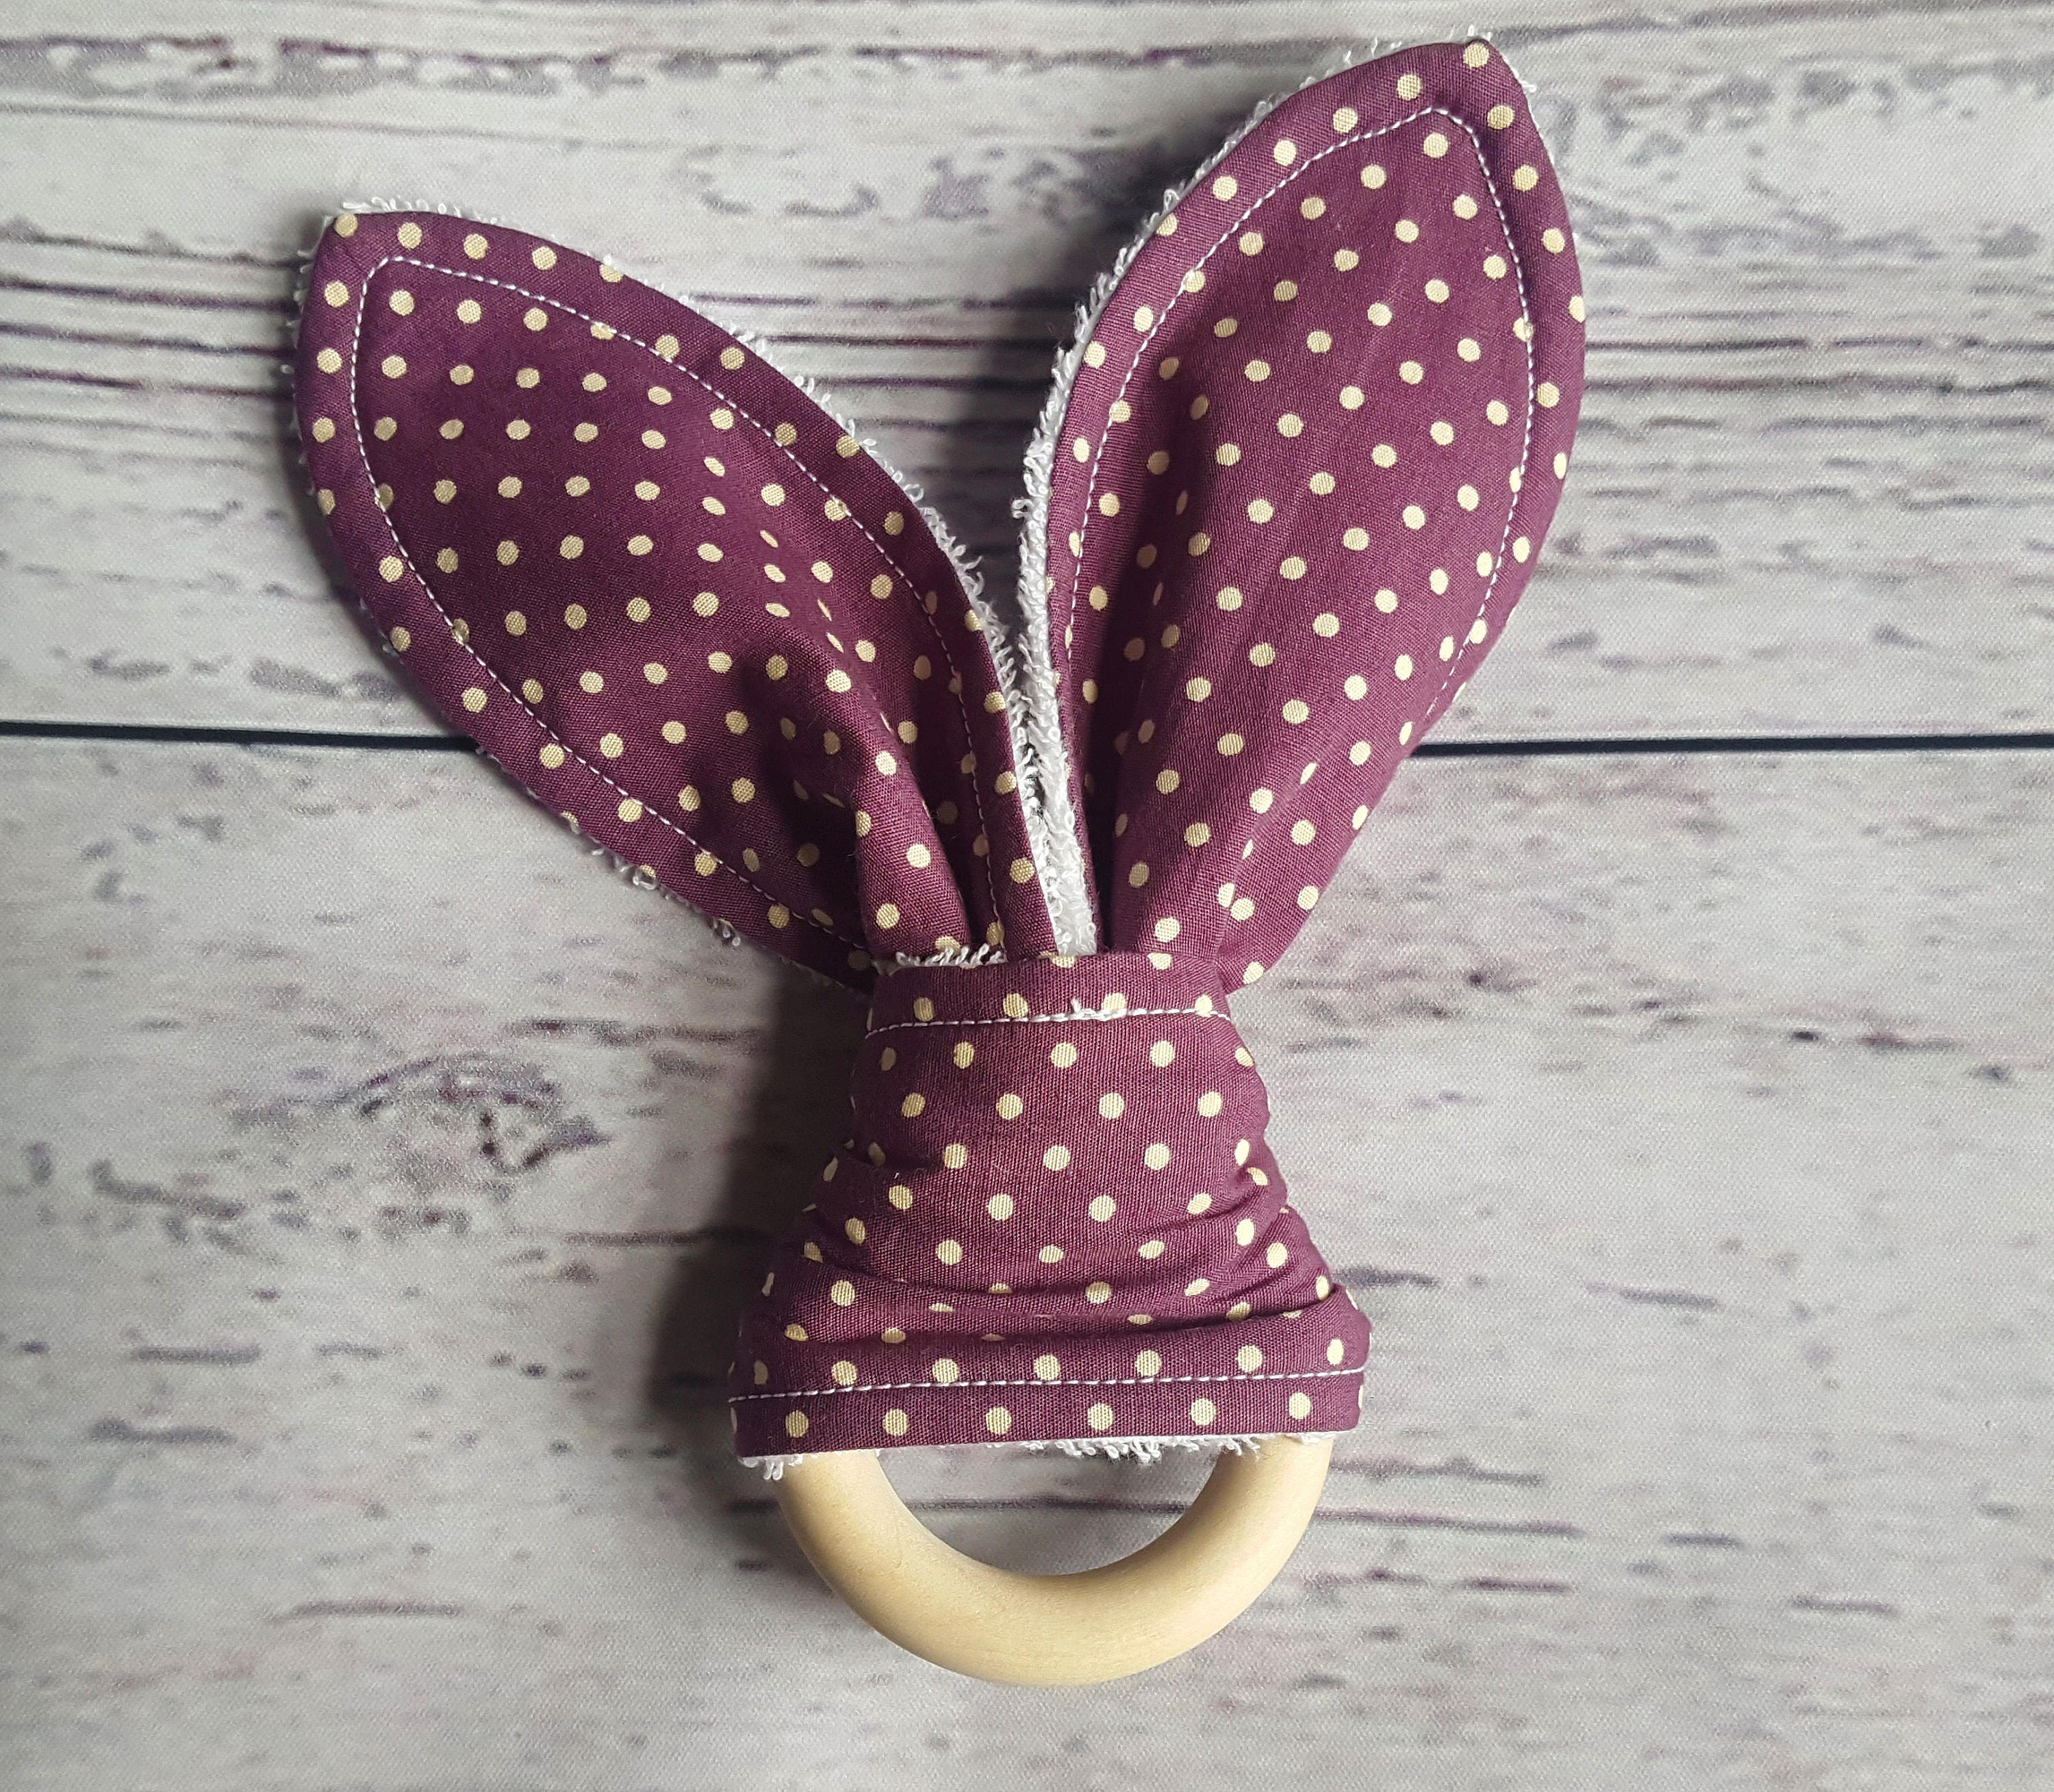 Wooden Teething Ring Wooden Toy Teething Toy Baby girl gift Wooden Teether Baby shower Baby Polka Dots Purple Baby Gift